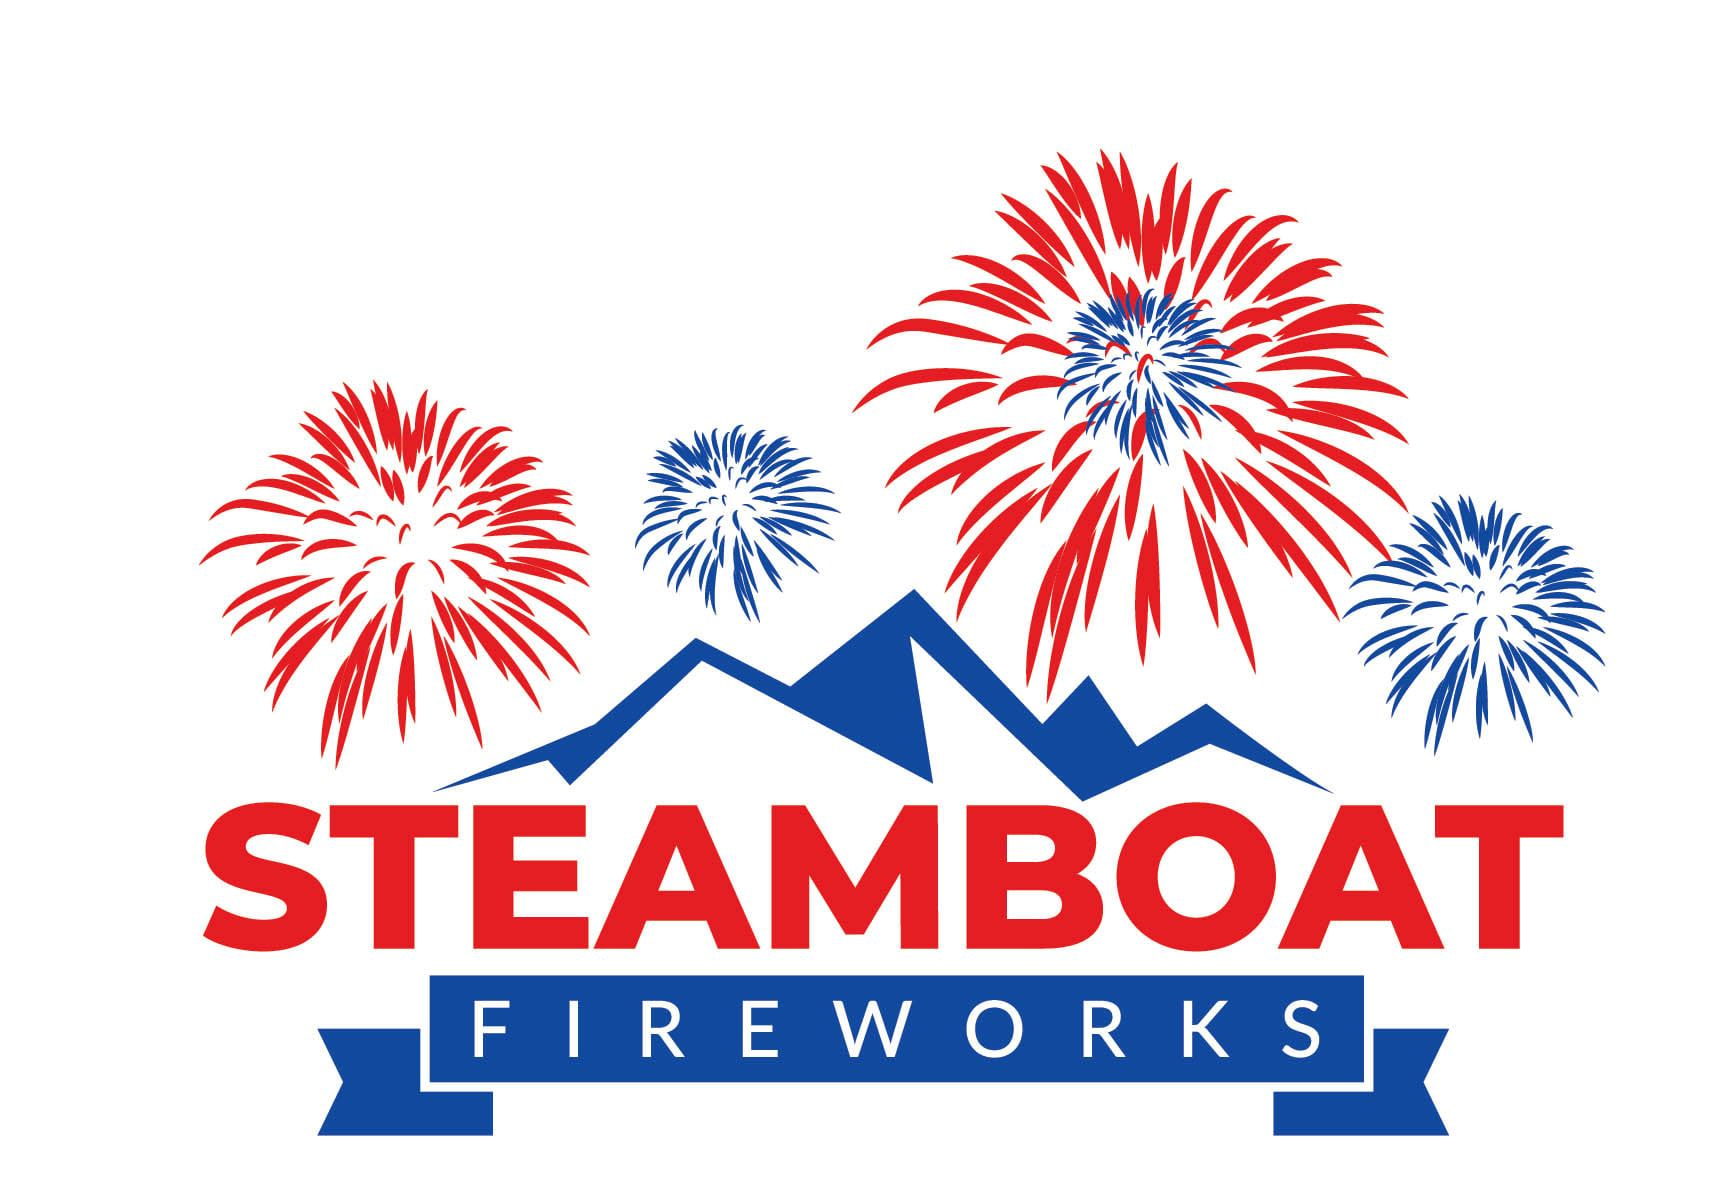 Steamboat Fireworks